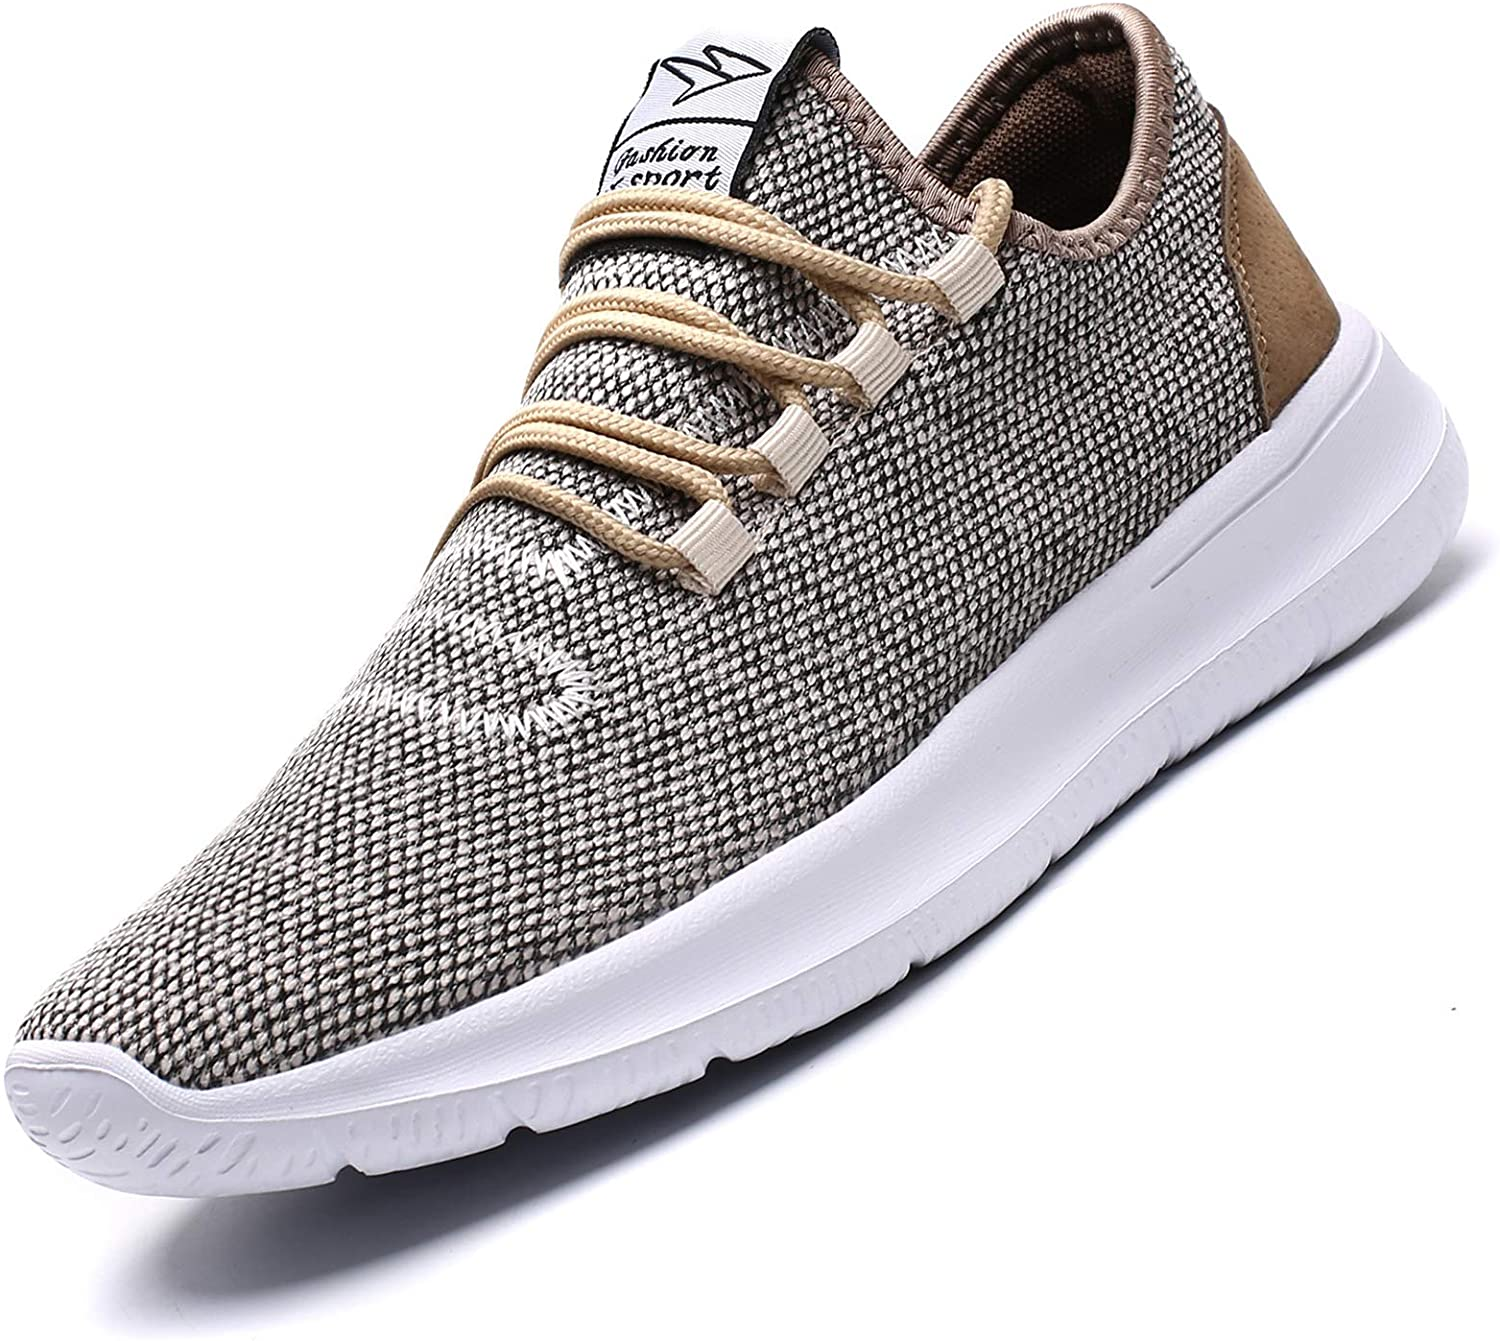 KEEZMZ Men's Running Shoes Outlet sale Gifts feature Fashion Breathable Soft Sneakers Mesh